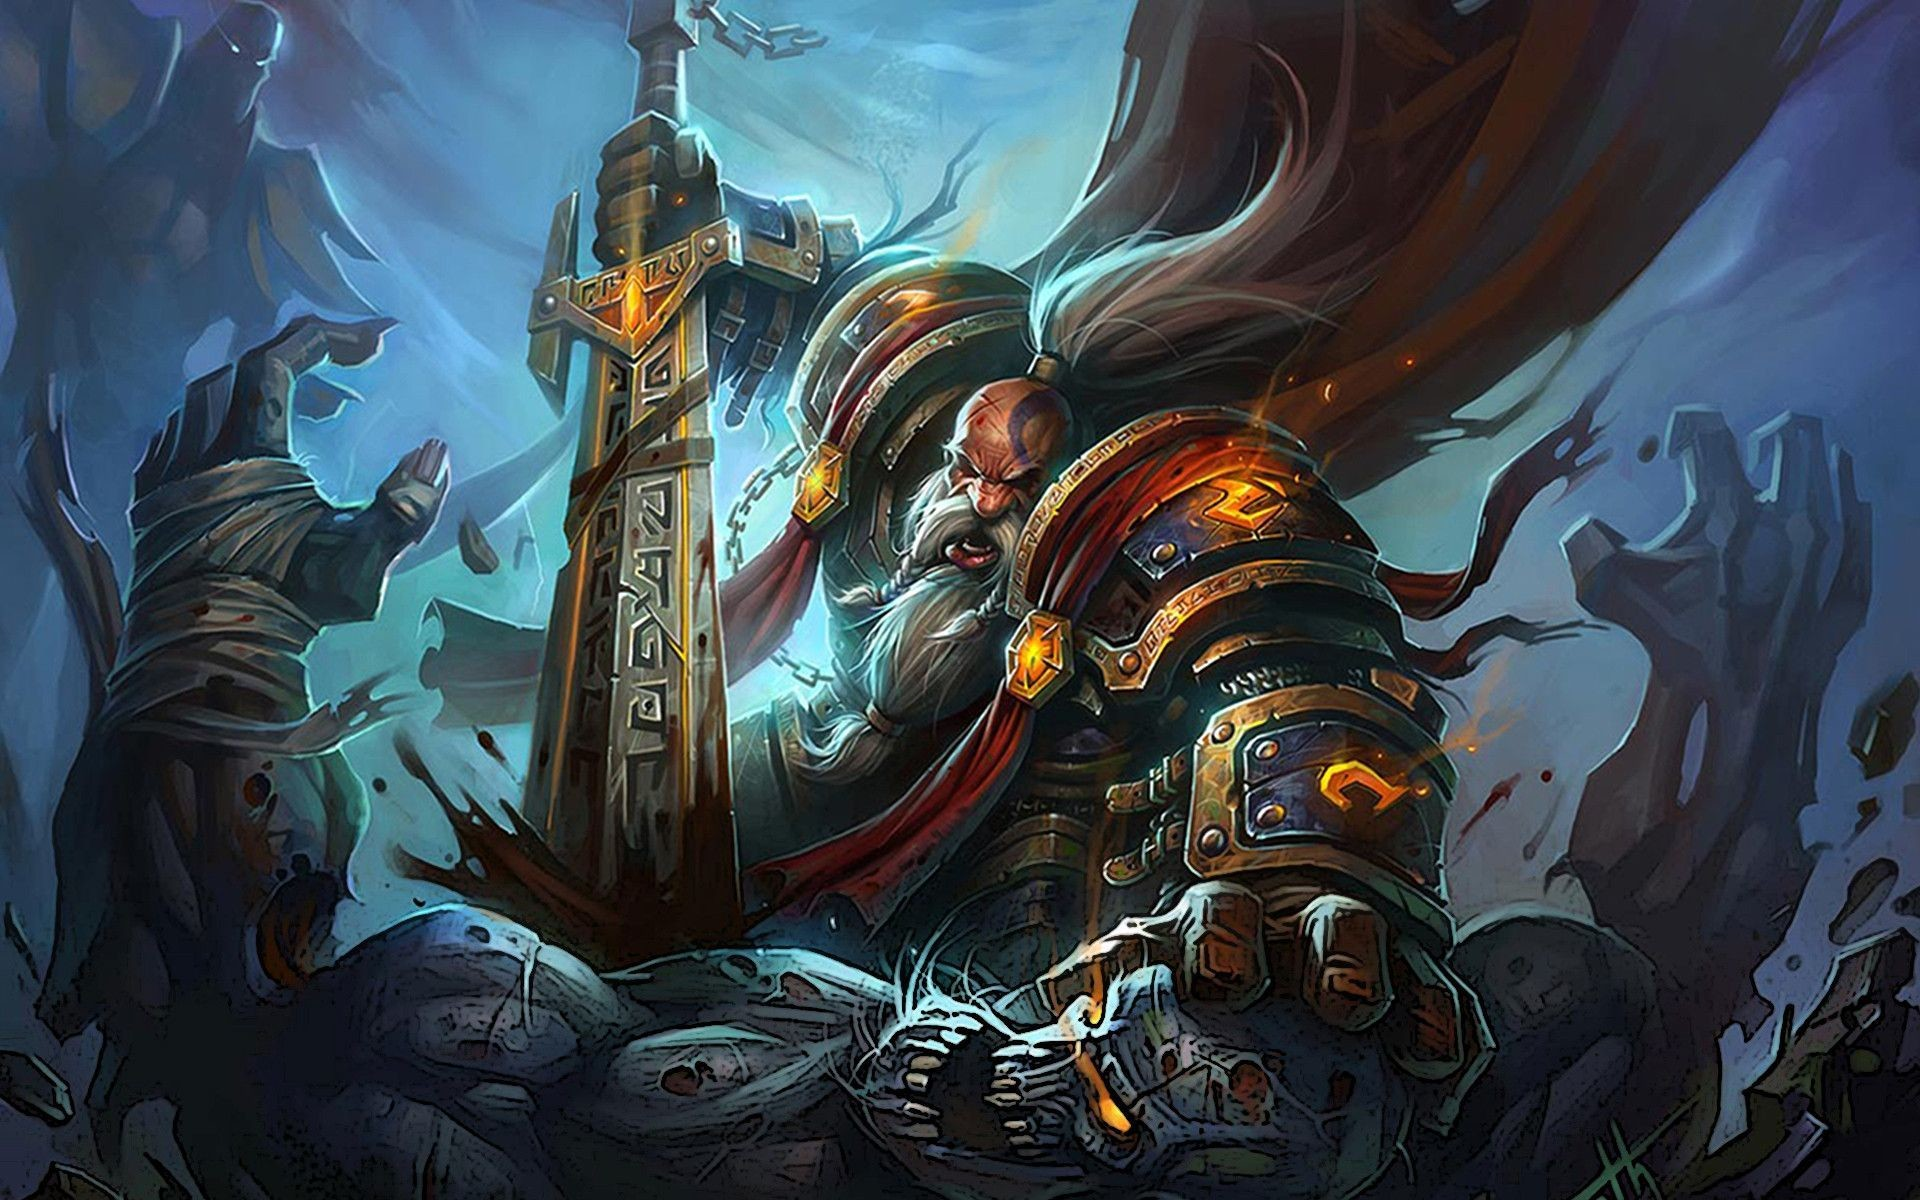 1920x1200 Horde World Of Warcraft HD Wallpapers Backgrounds | HD Wallpapers |  Pinterest | Horde, Hd wallpaper and Wallpaper